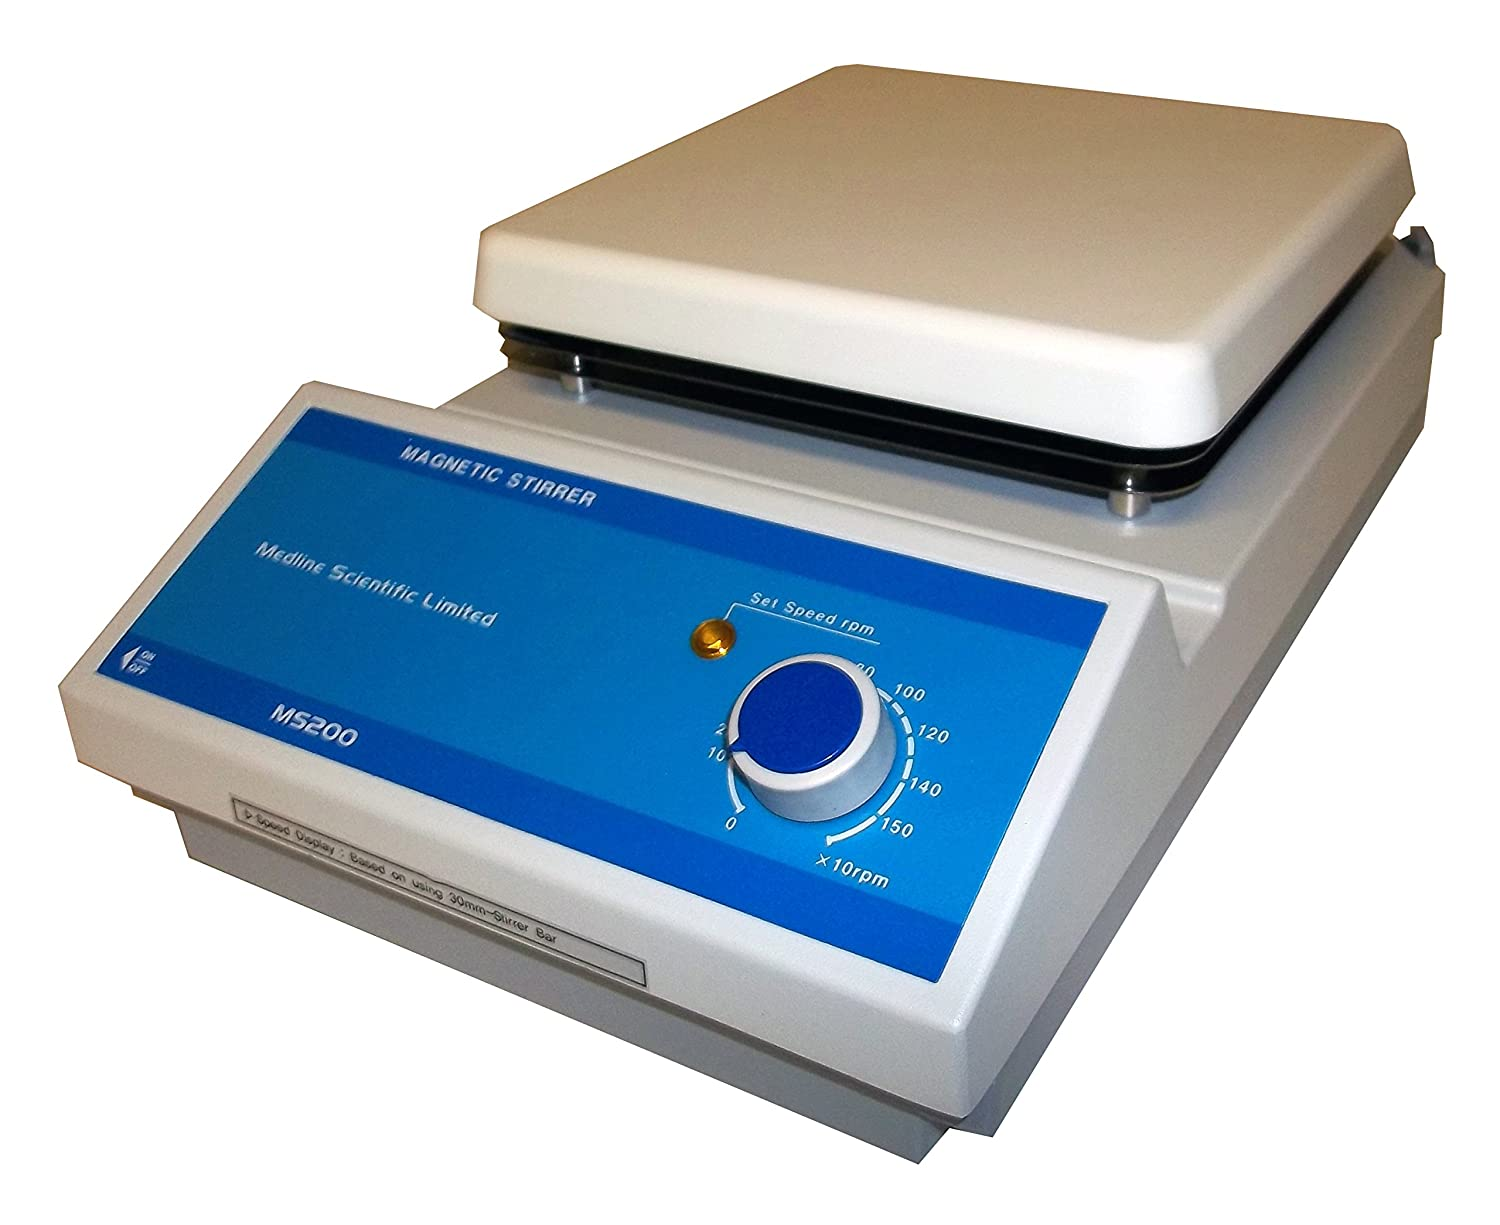 Medline MS200 Magnetic Stirrer